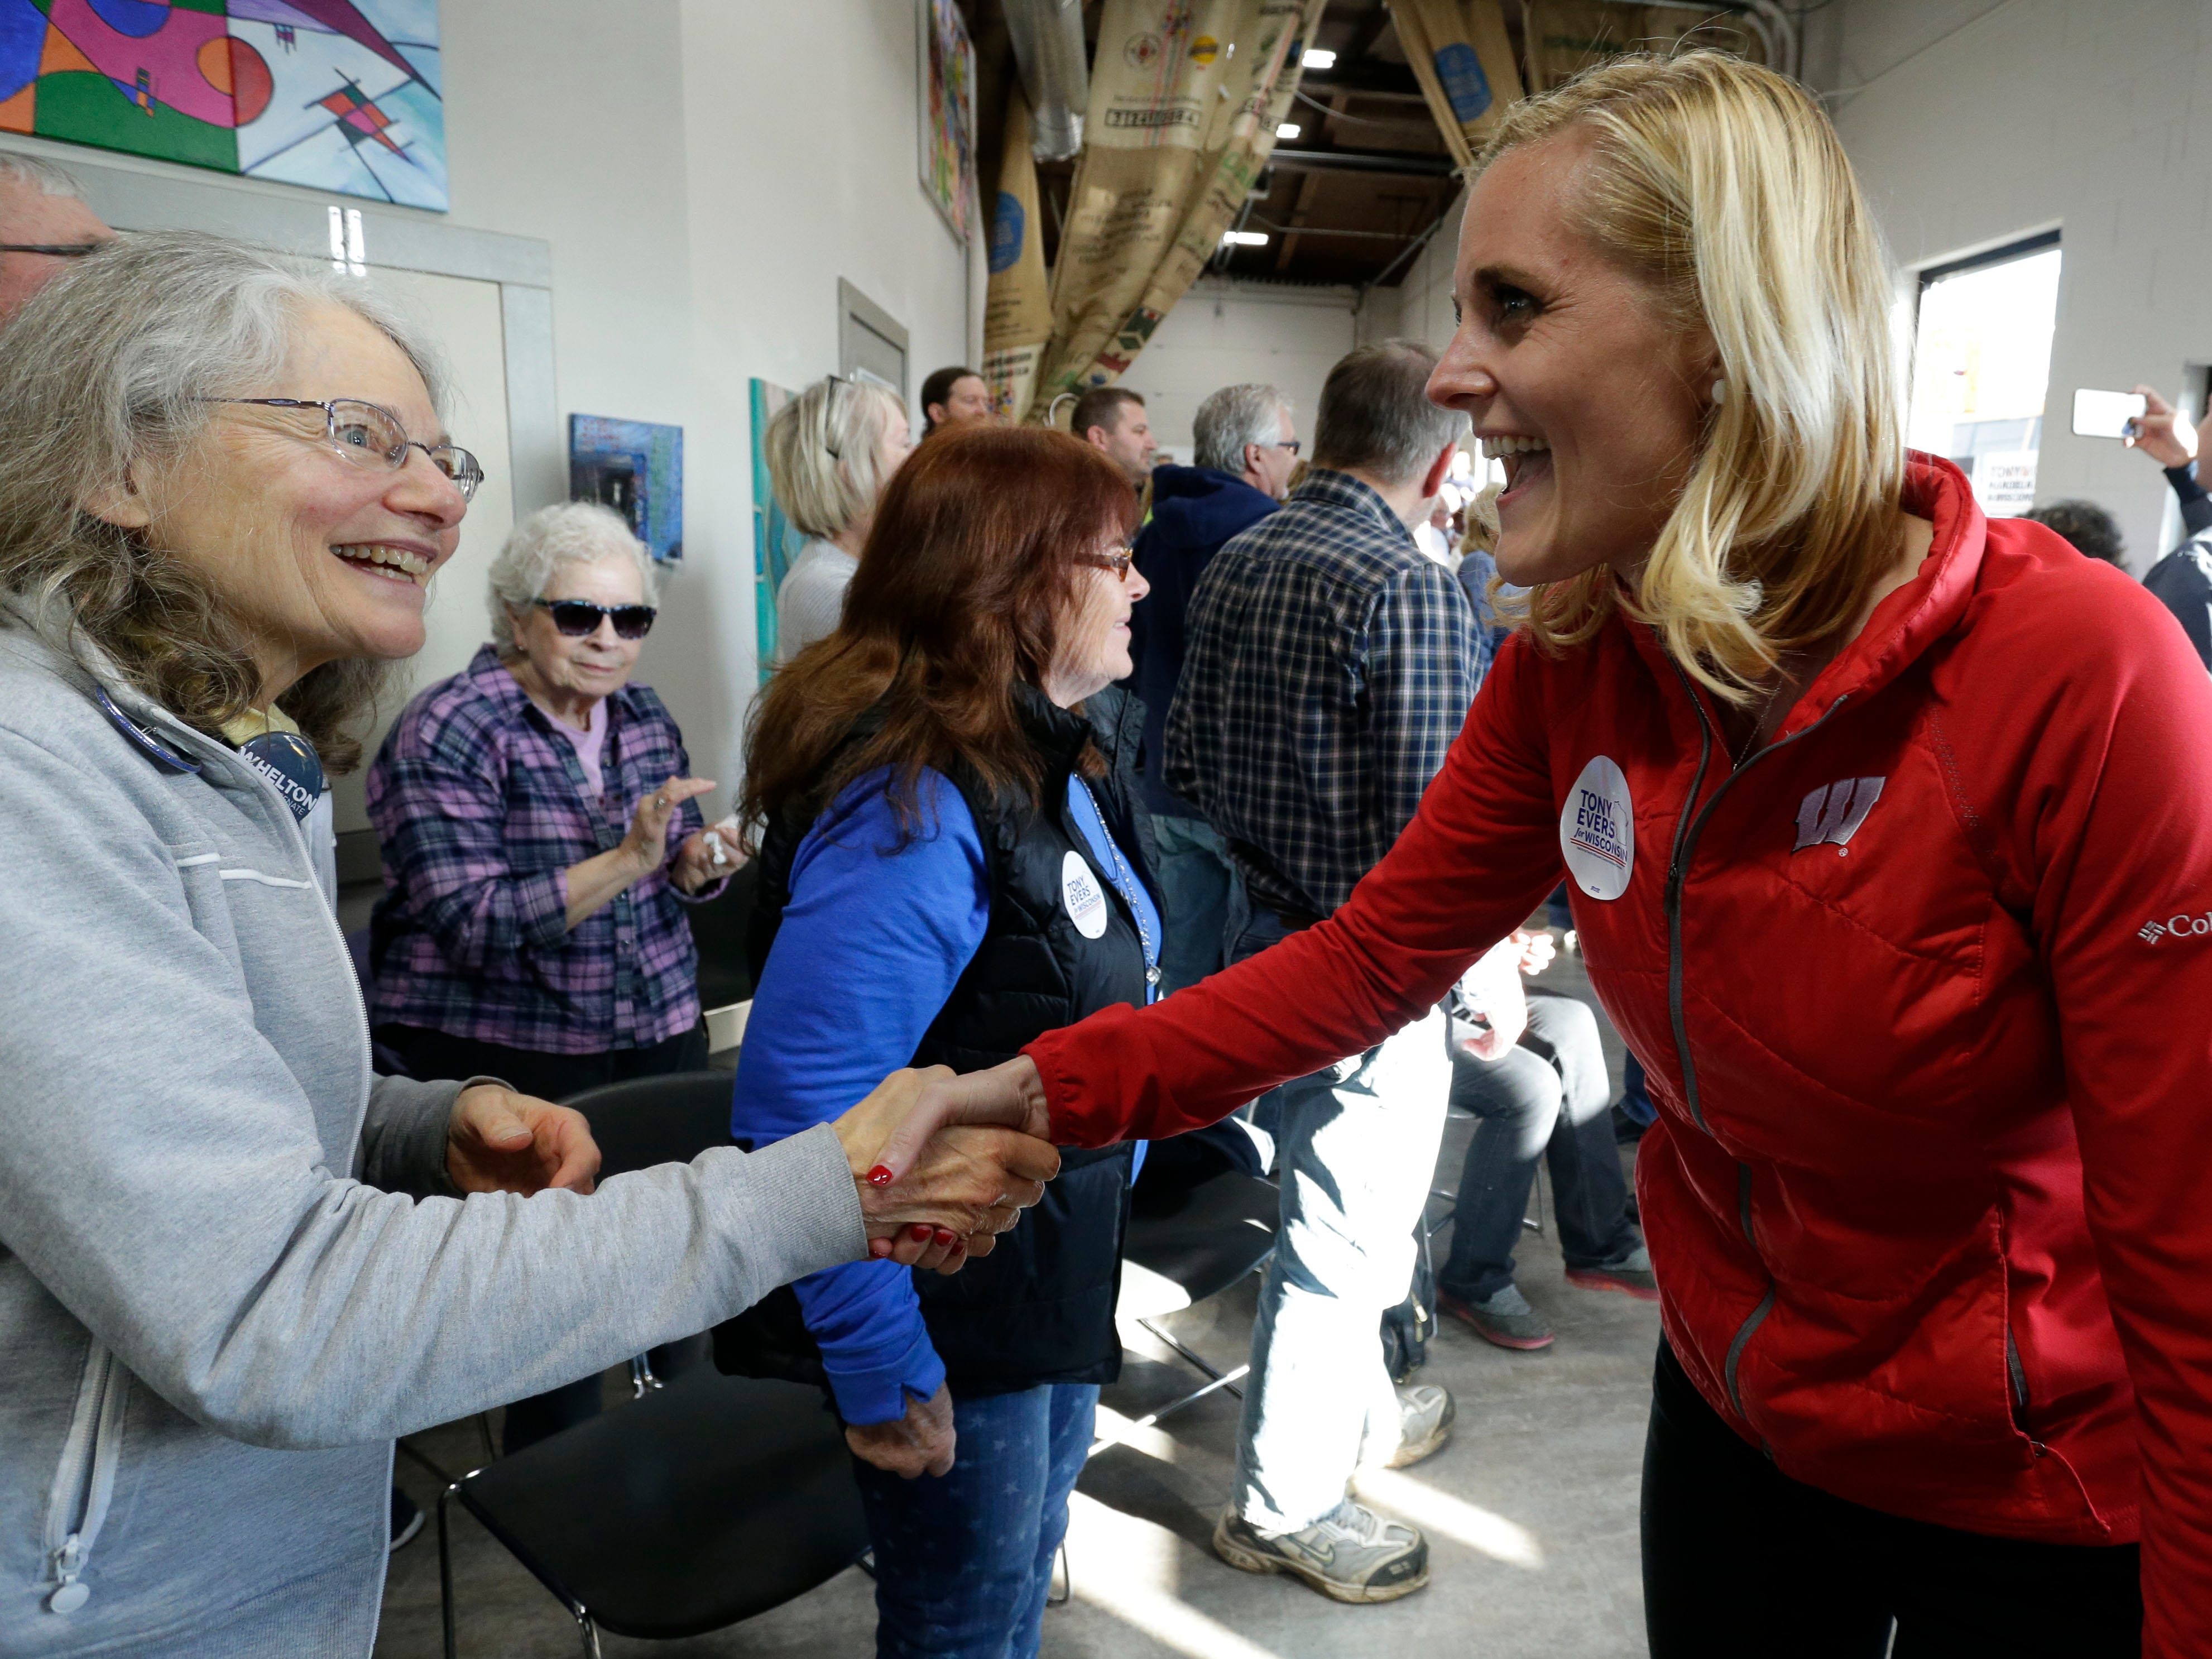 Wisconsin Treasury Candidate Sarah Godlewski shakes hand at The Hub coffee shop during a campaign visit, Saturday, November 3, 2018, in Plymouth, Wis.